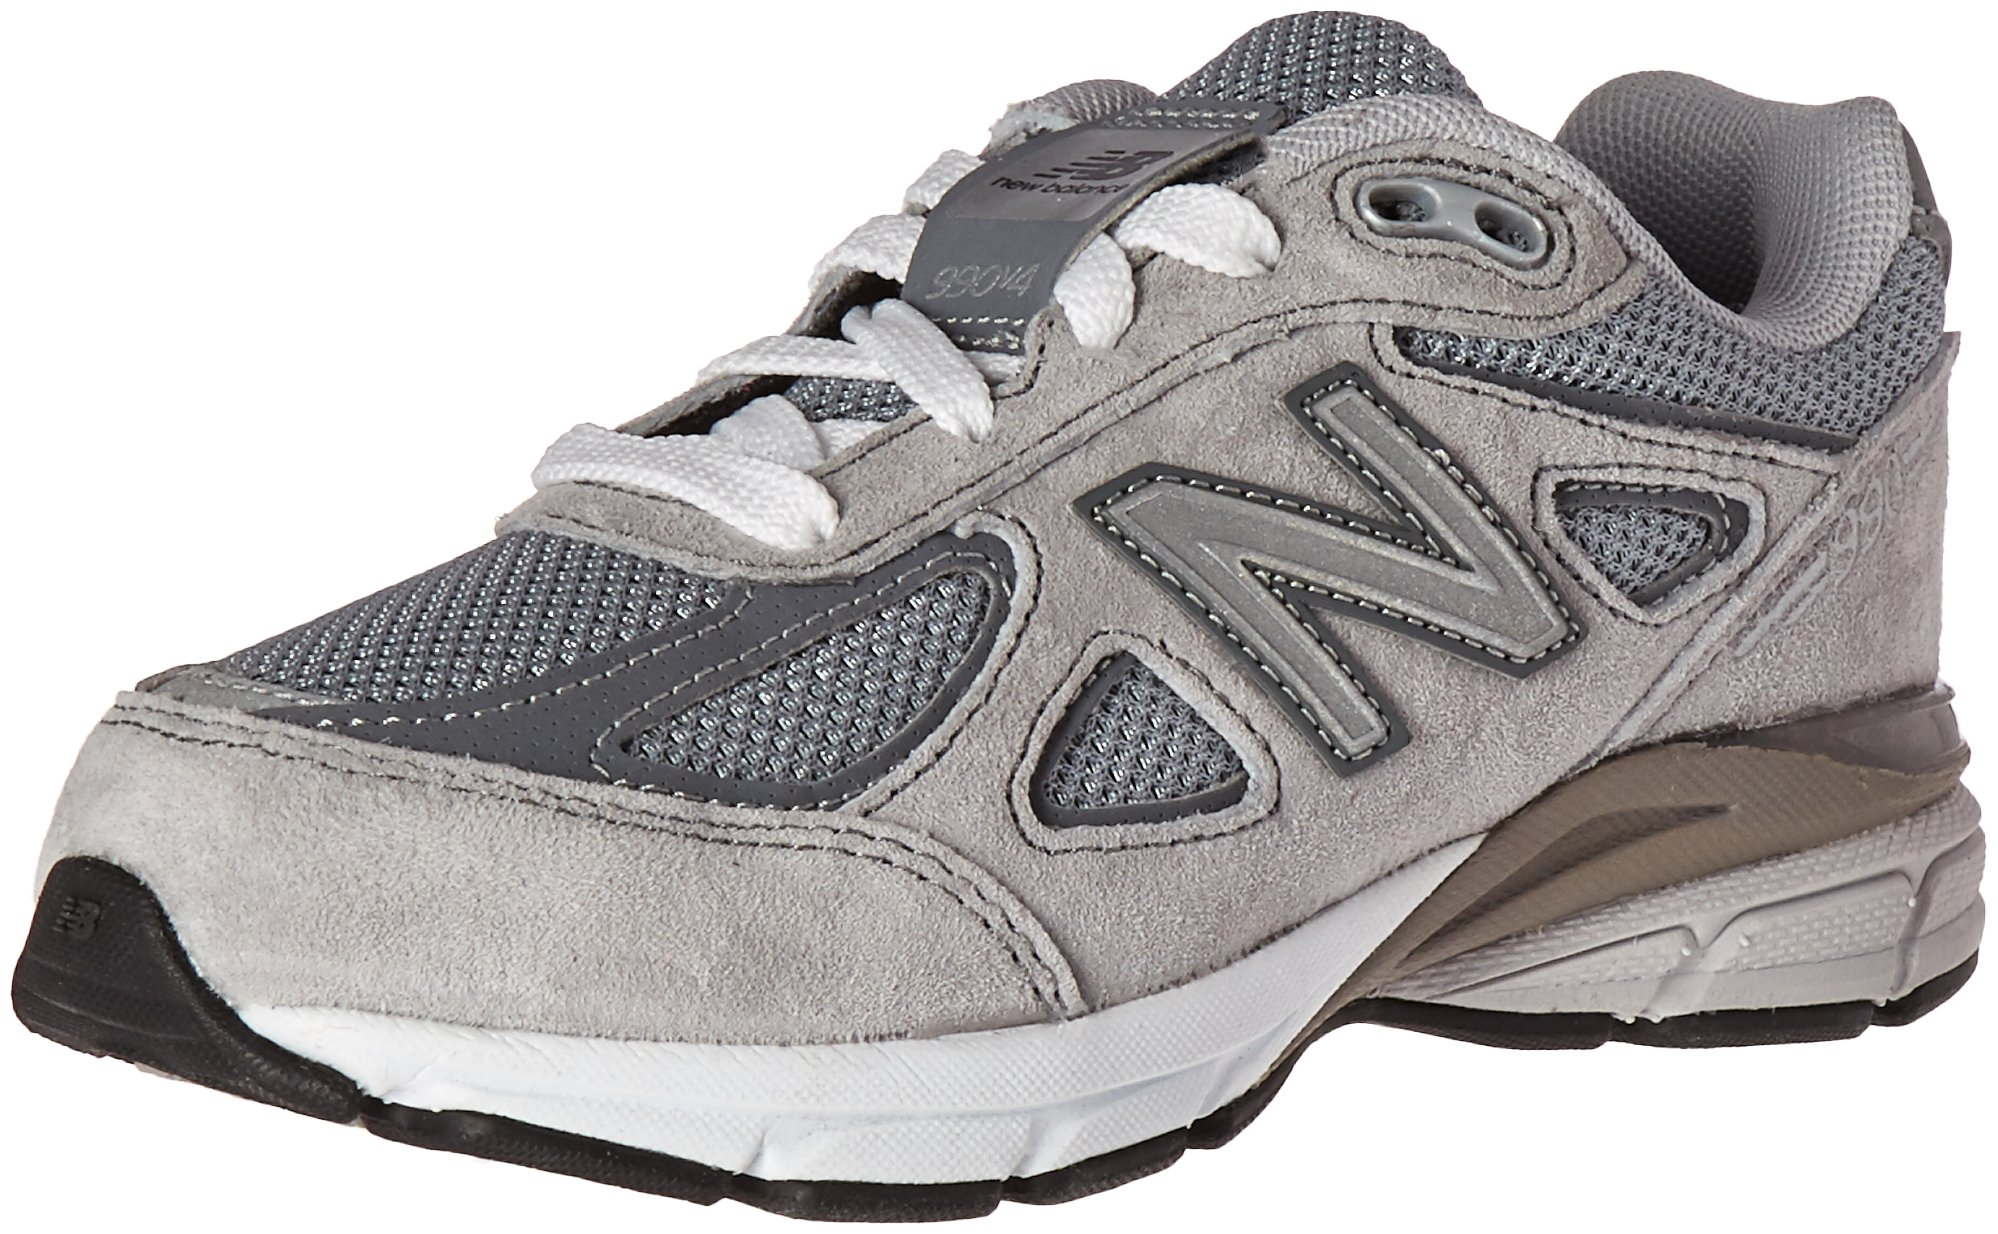 New Balance KJ990V4 Running Shoe (Little Kid/Big Kid), Grey/Grey, 1.5 M US Little Kid by New Balance (Image #1)